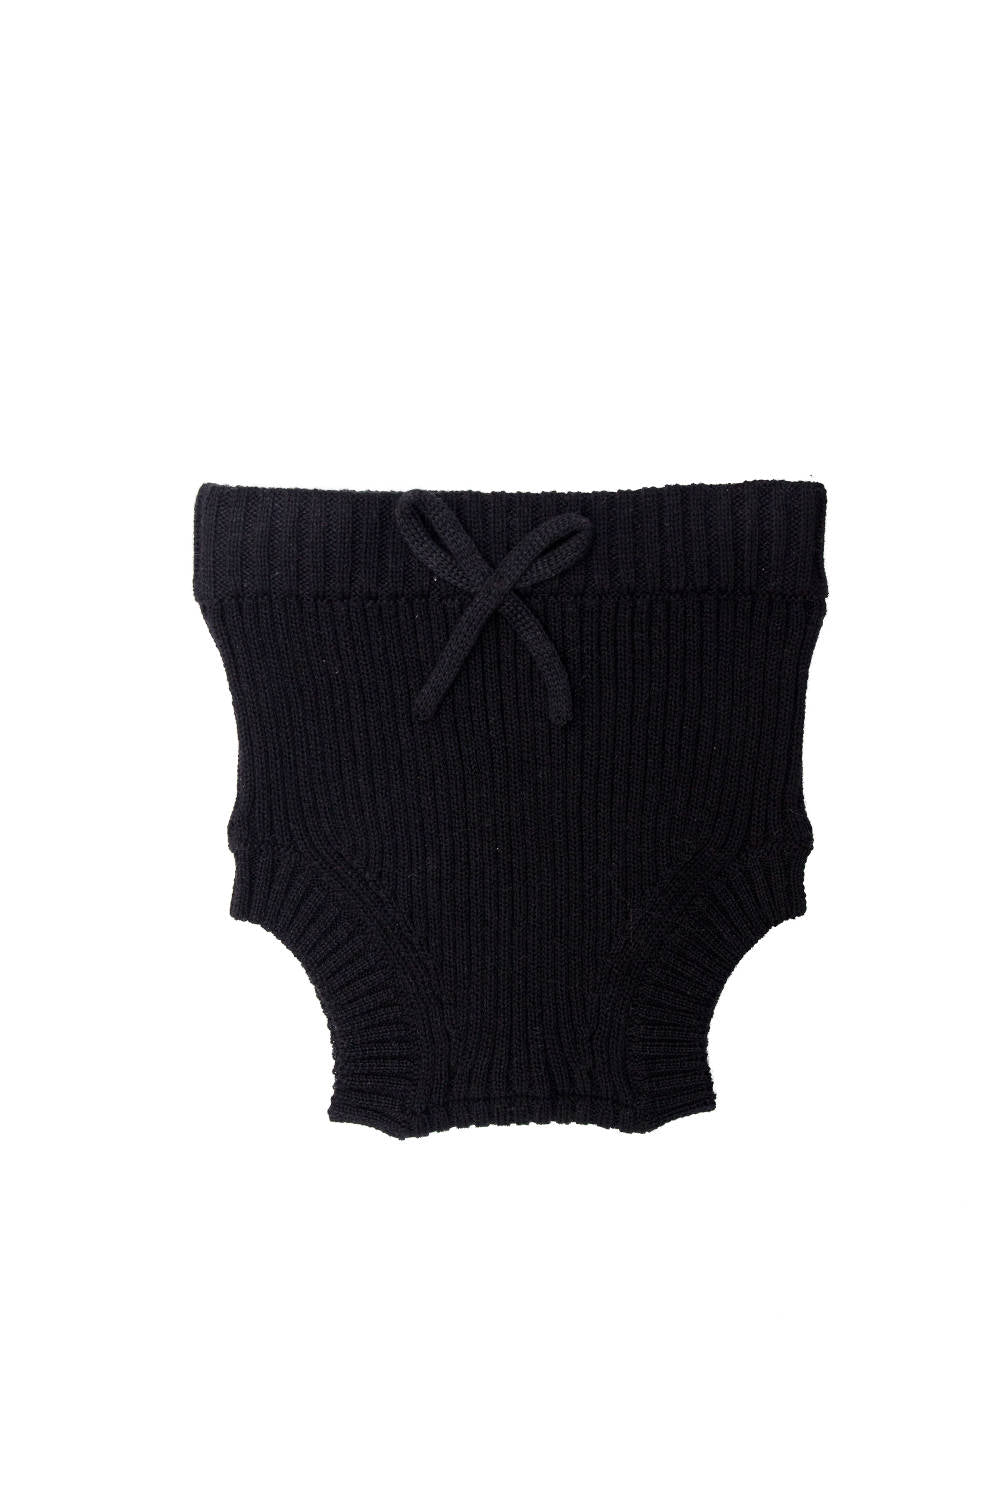 Tun Tun Unisex-baby' Black Knitted Bloomer